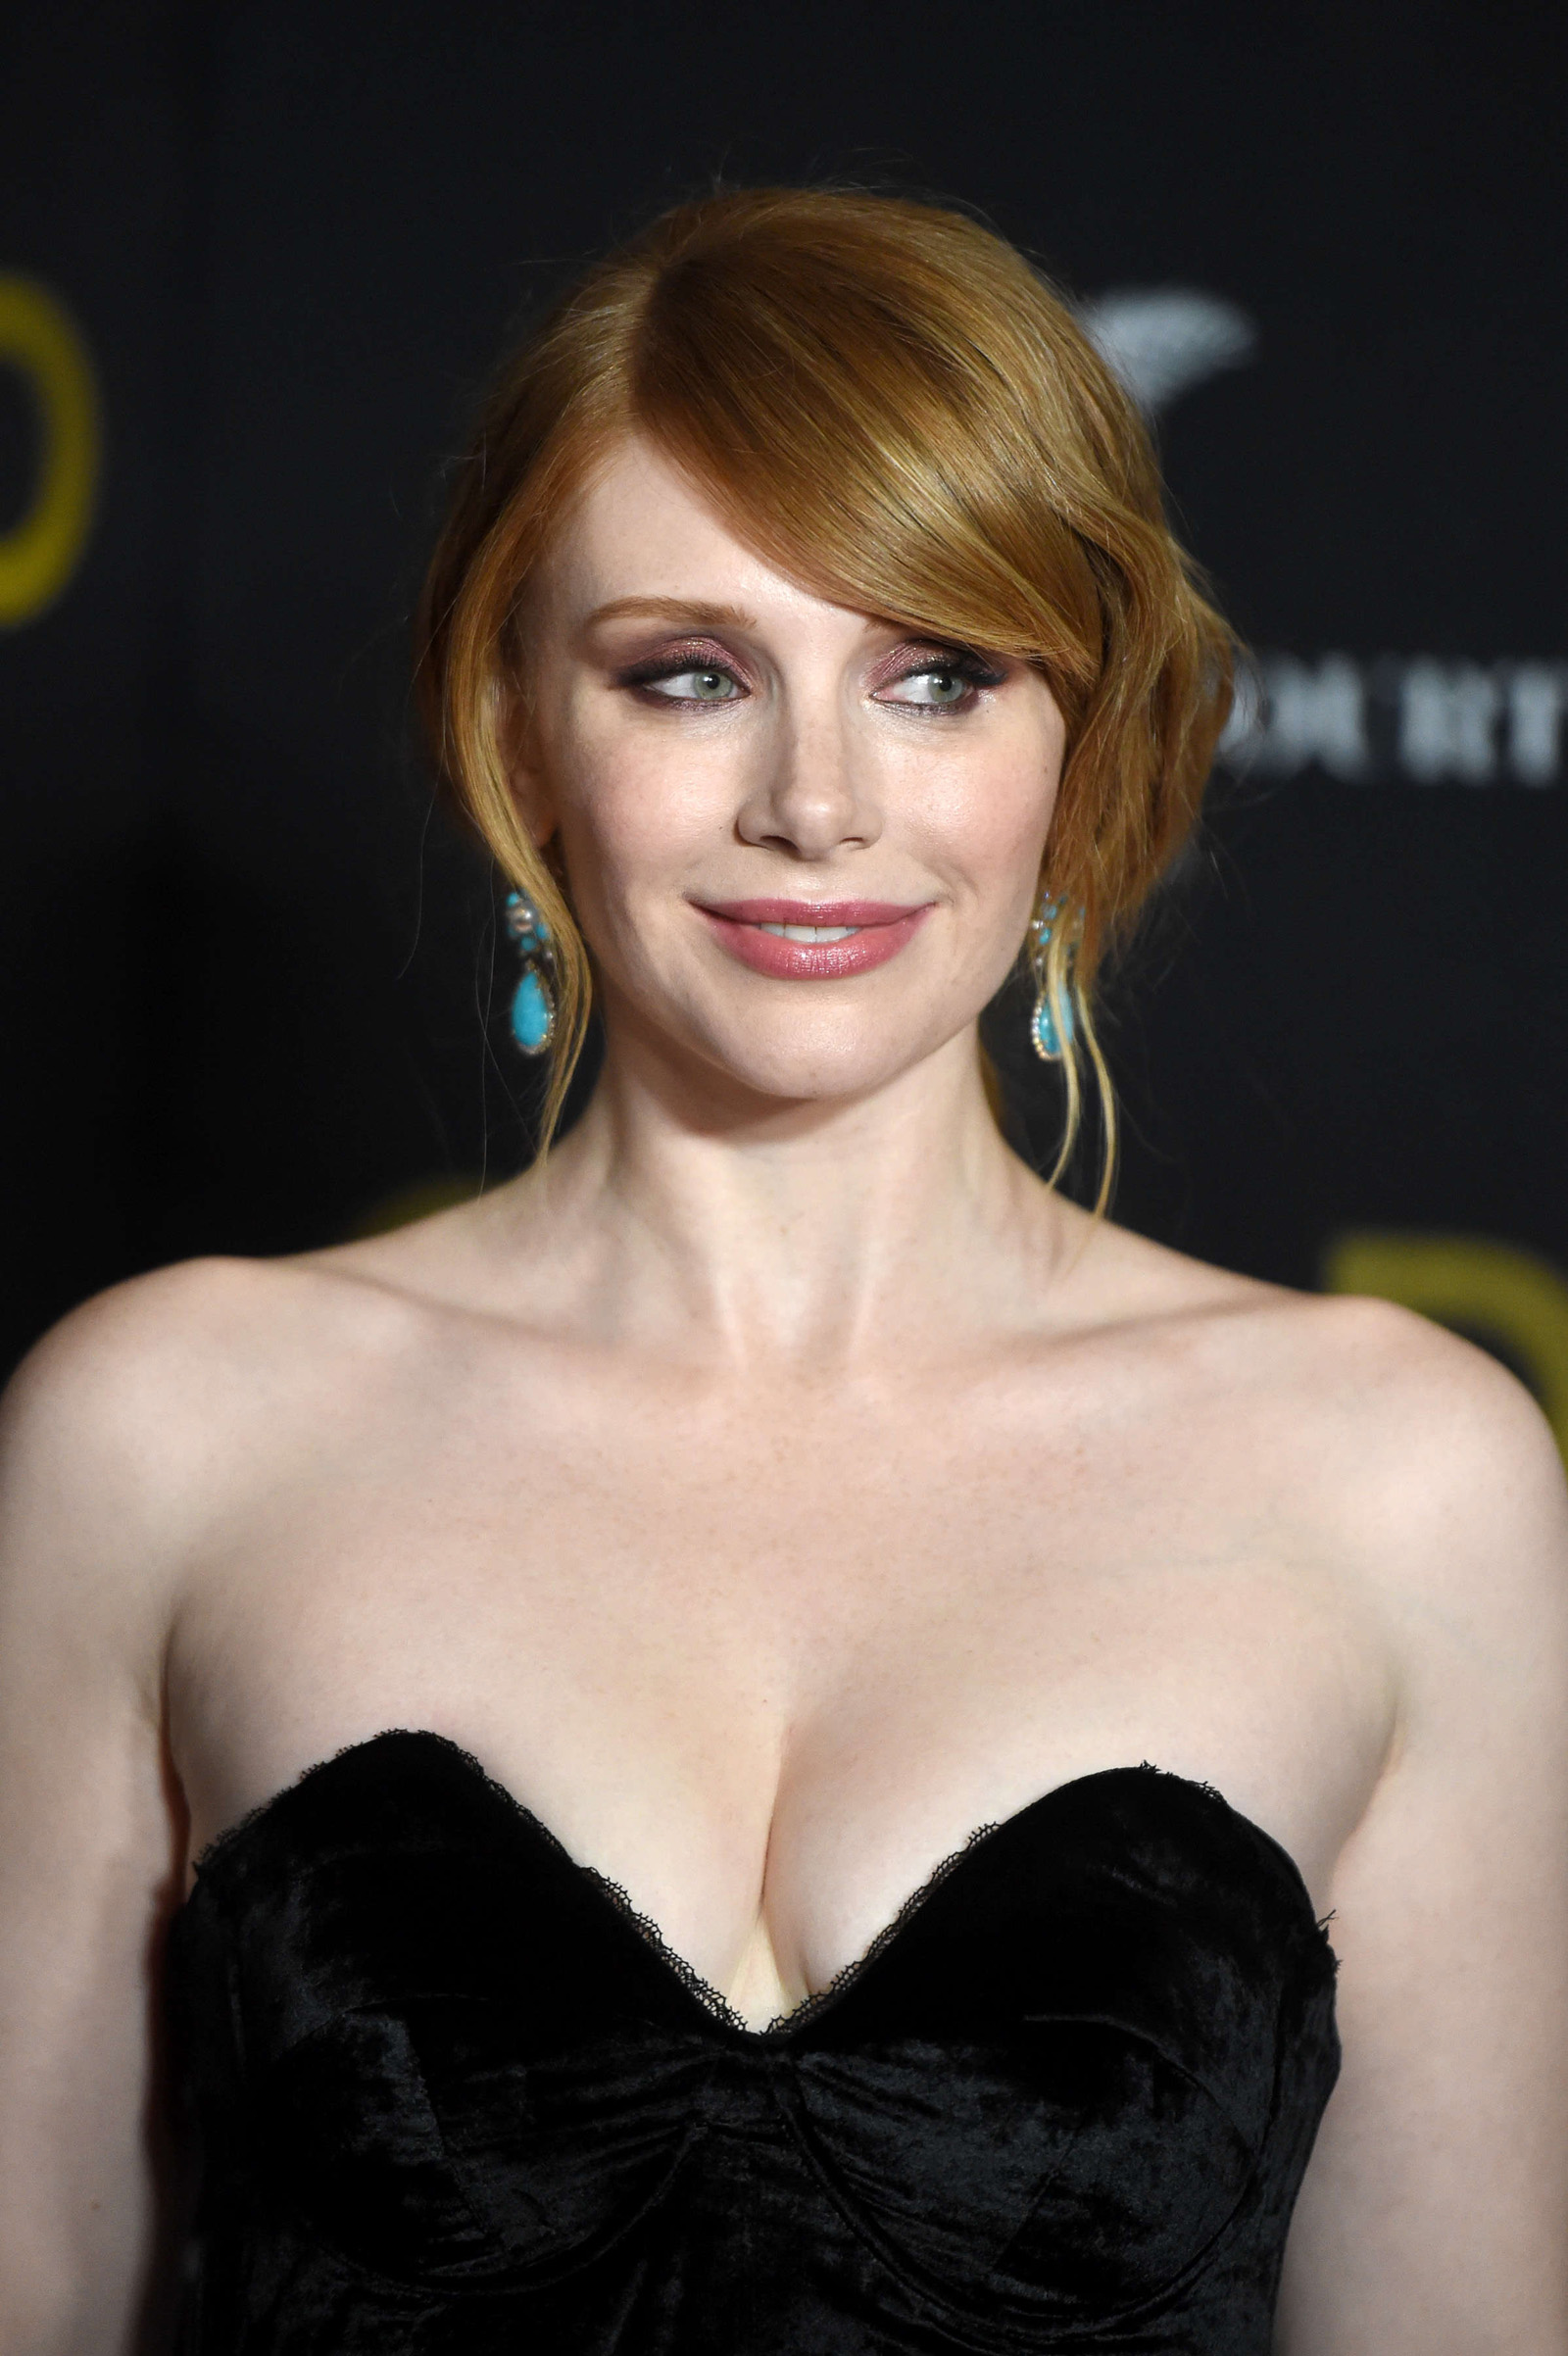 Bryce dallas howard sexy pics